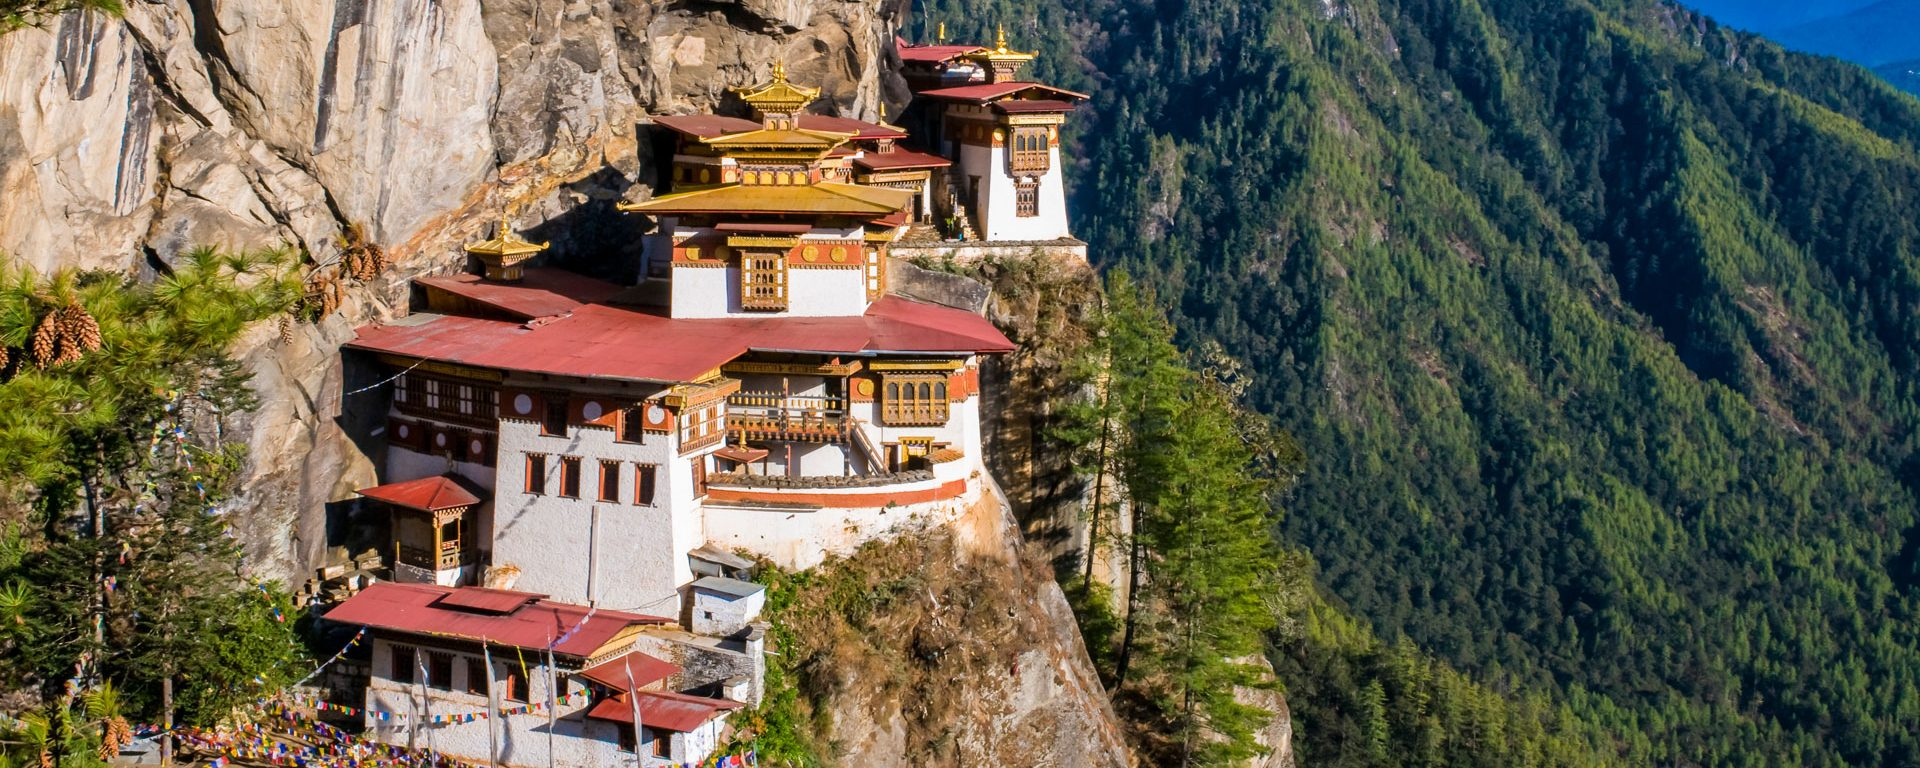 Taktsang monastery (Tiger's Nest) hanging in the cliffs, Paro, Bhutan